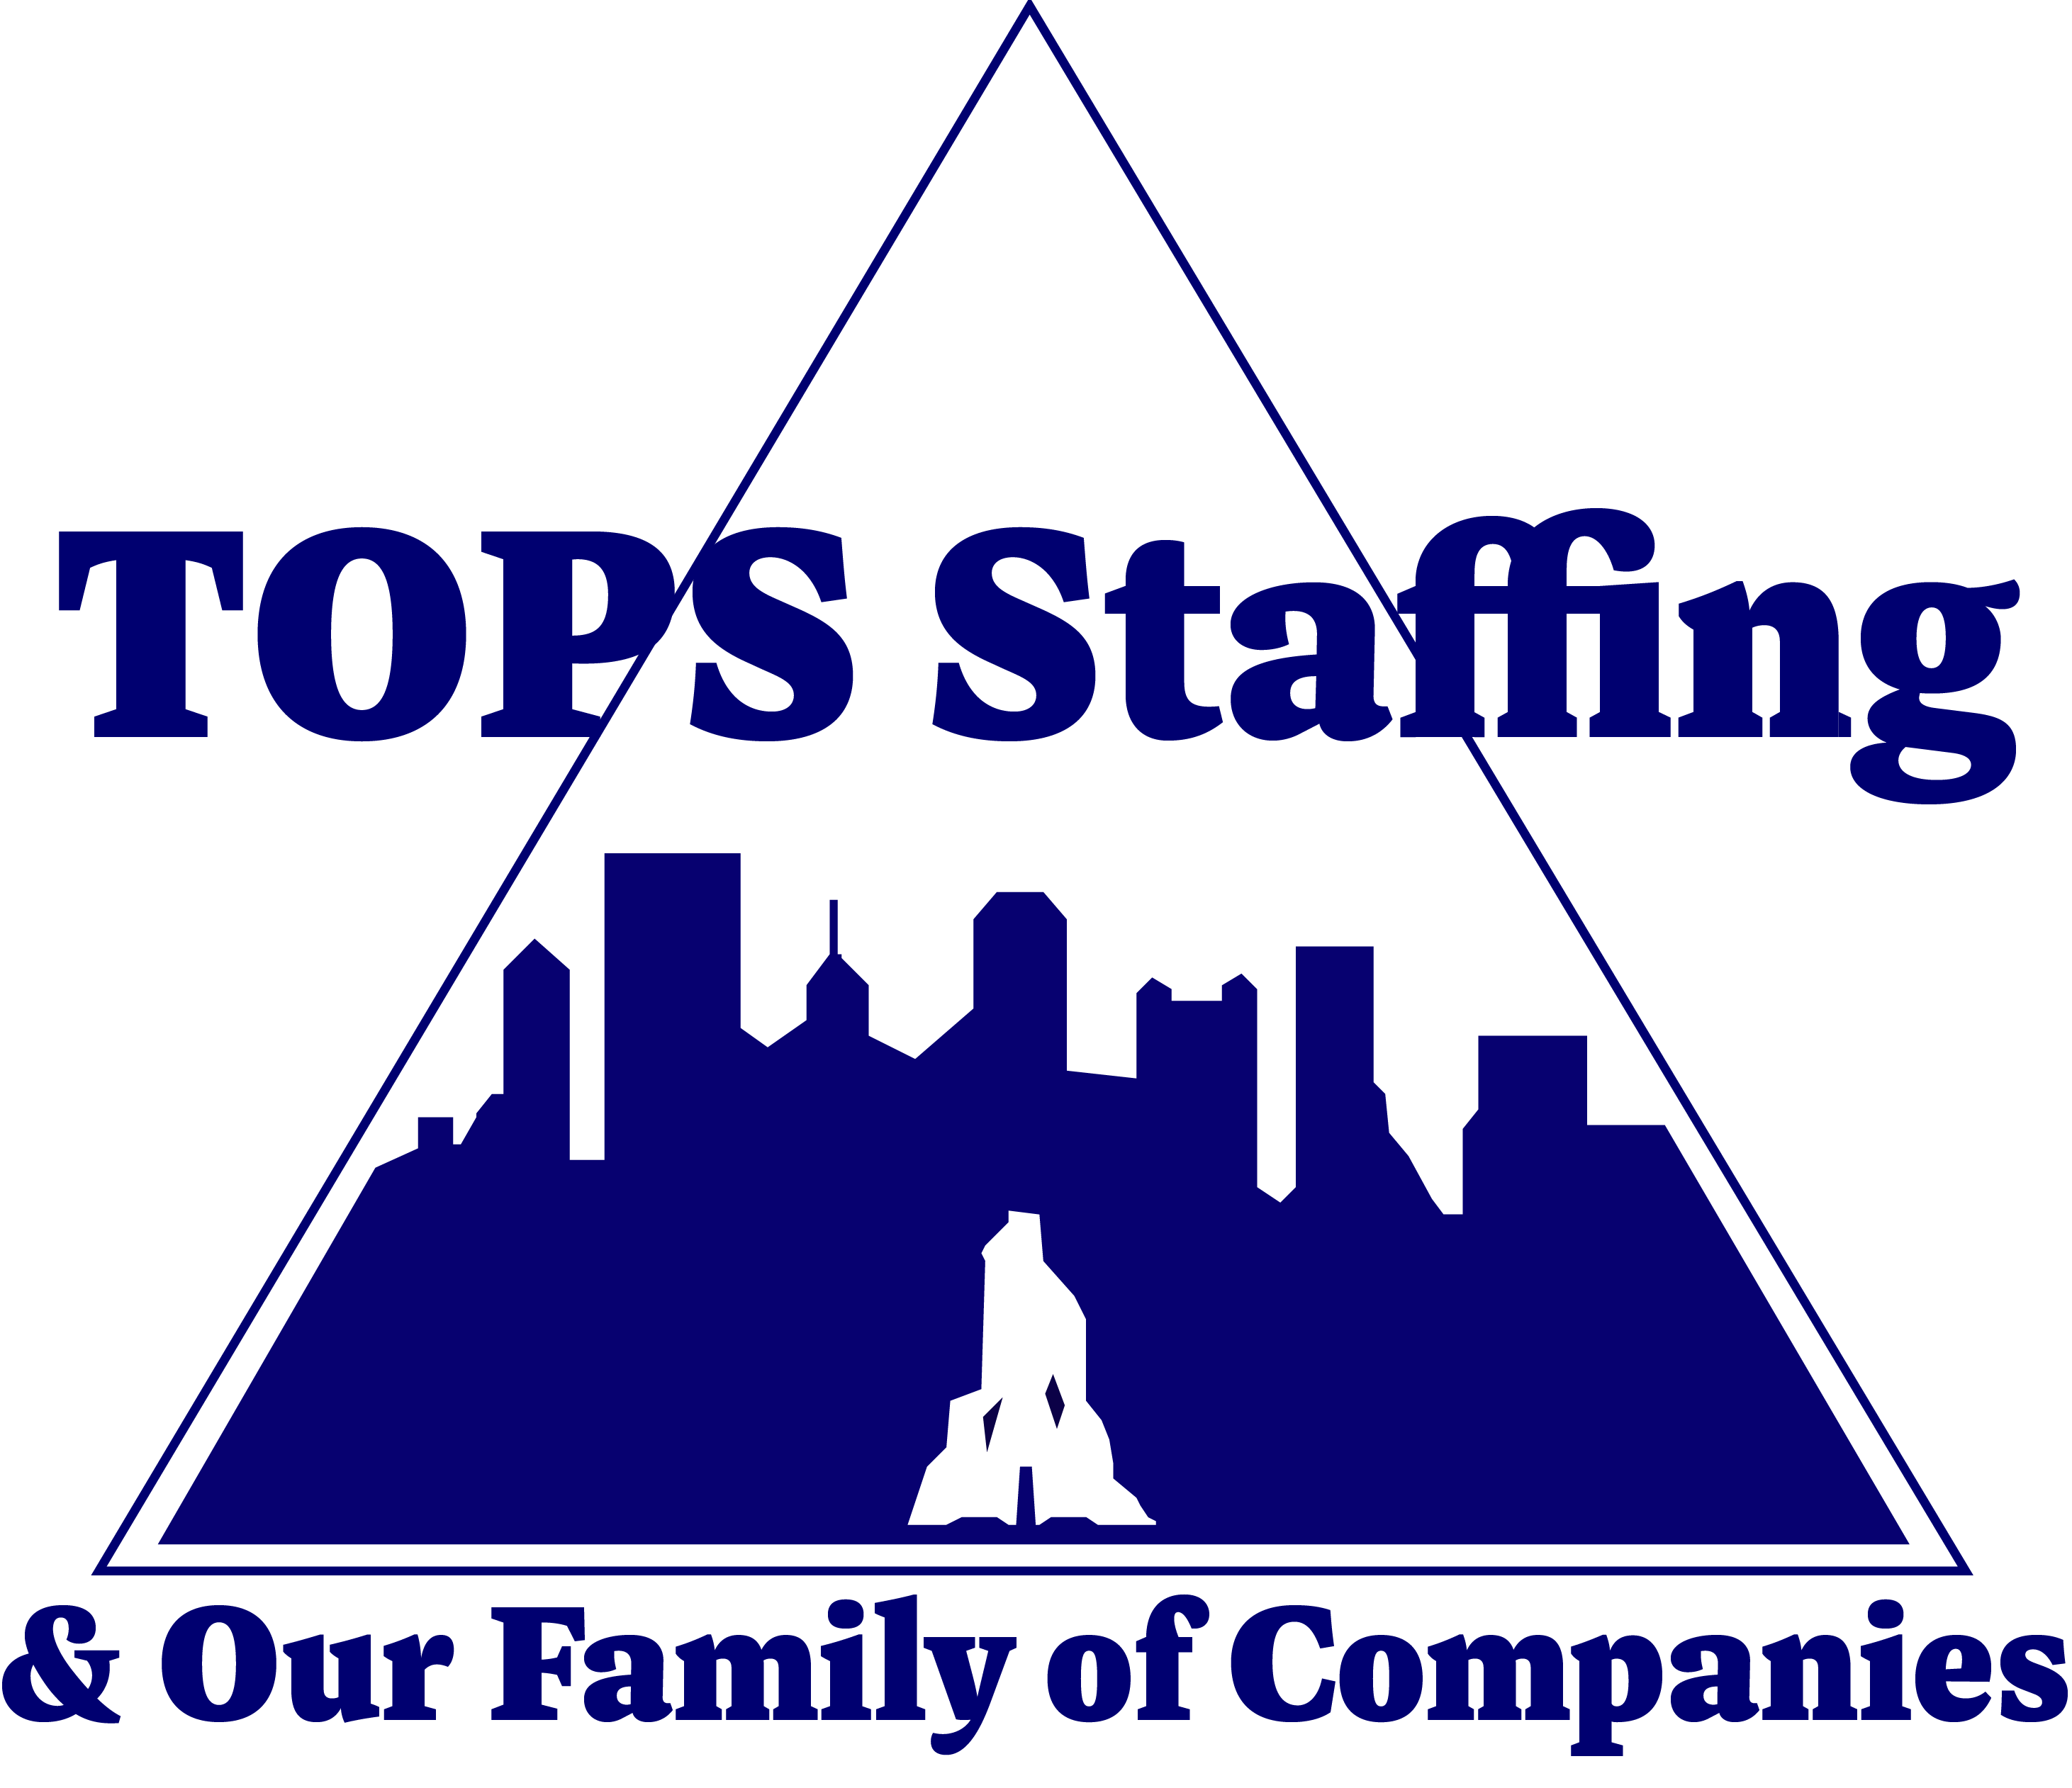 The Staffing Center